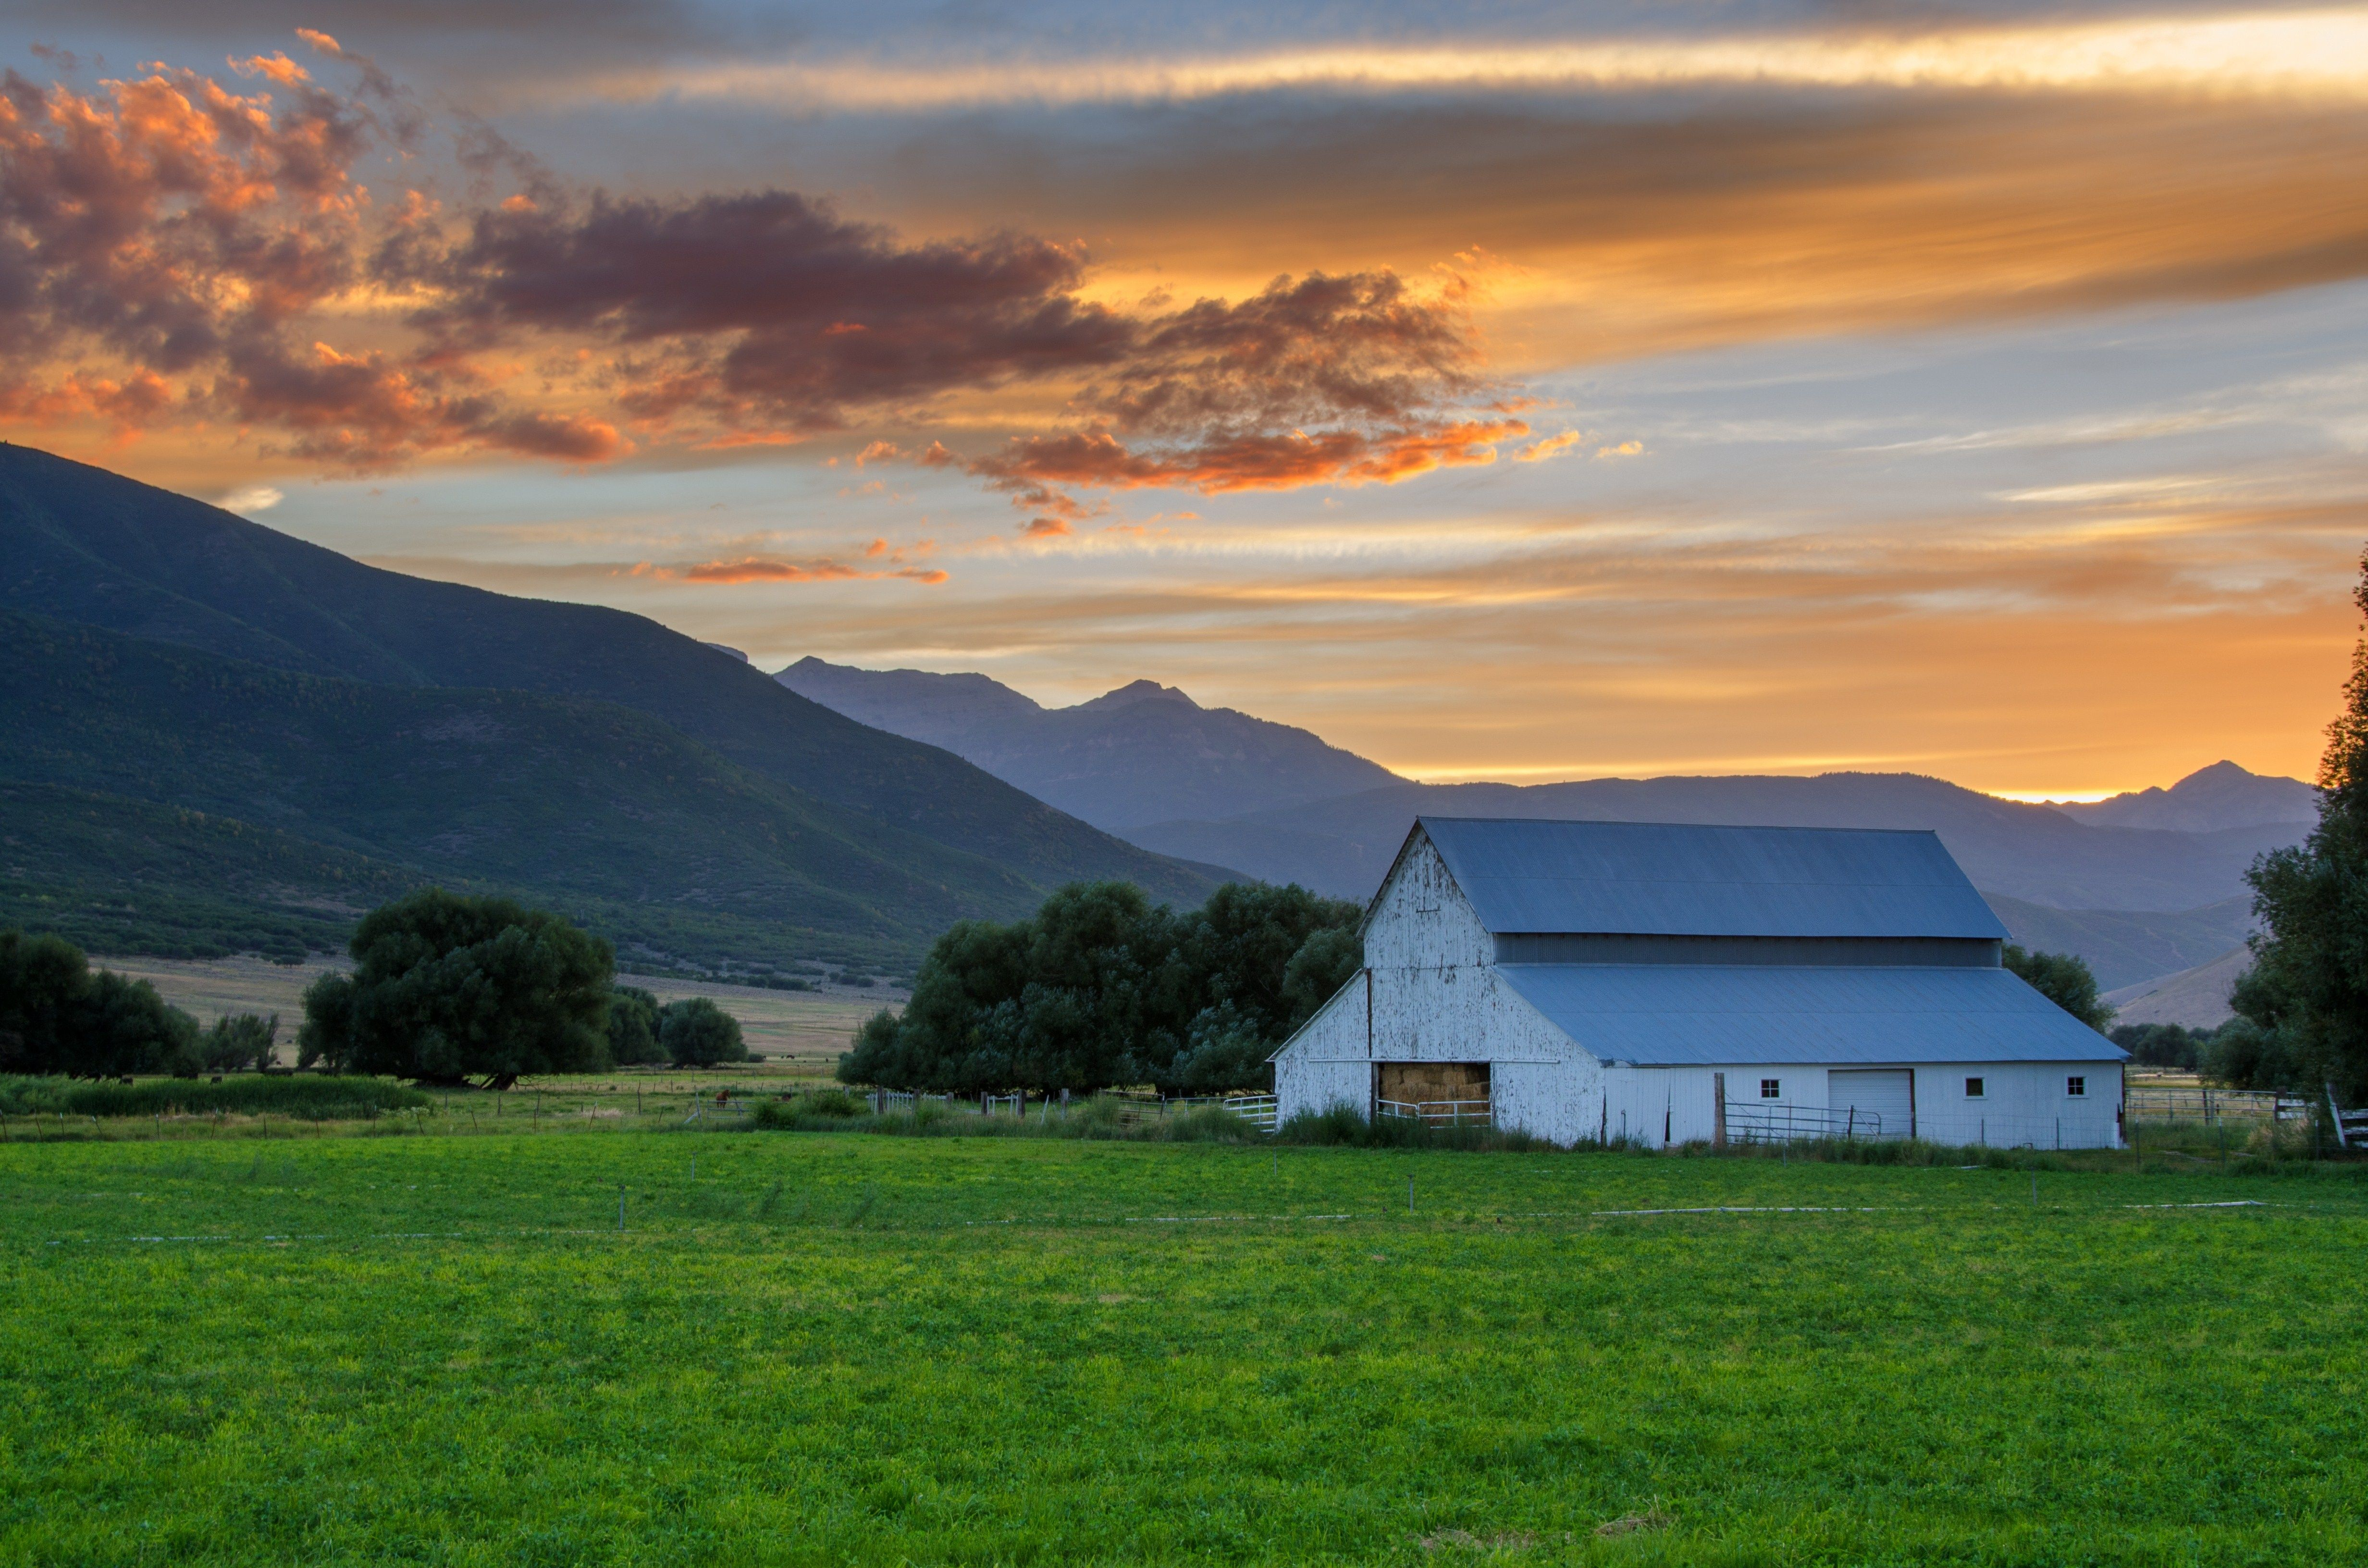 A sunset over farmland and a barn.